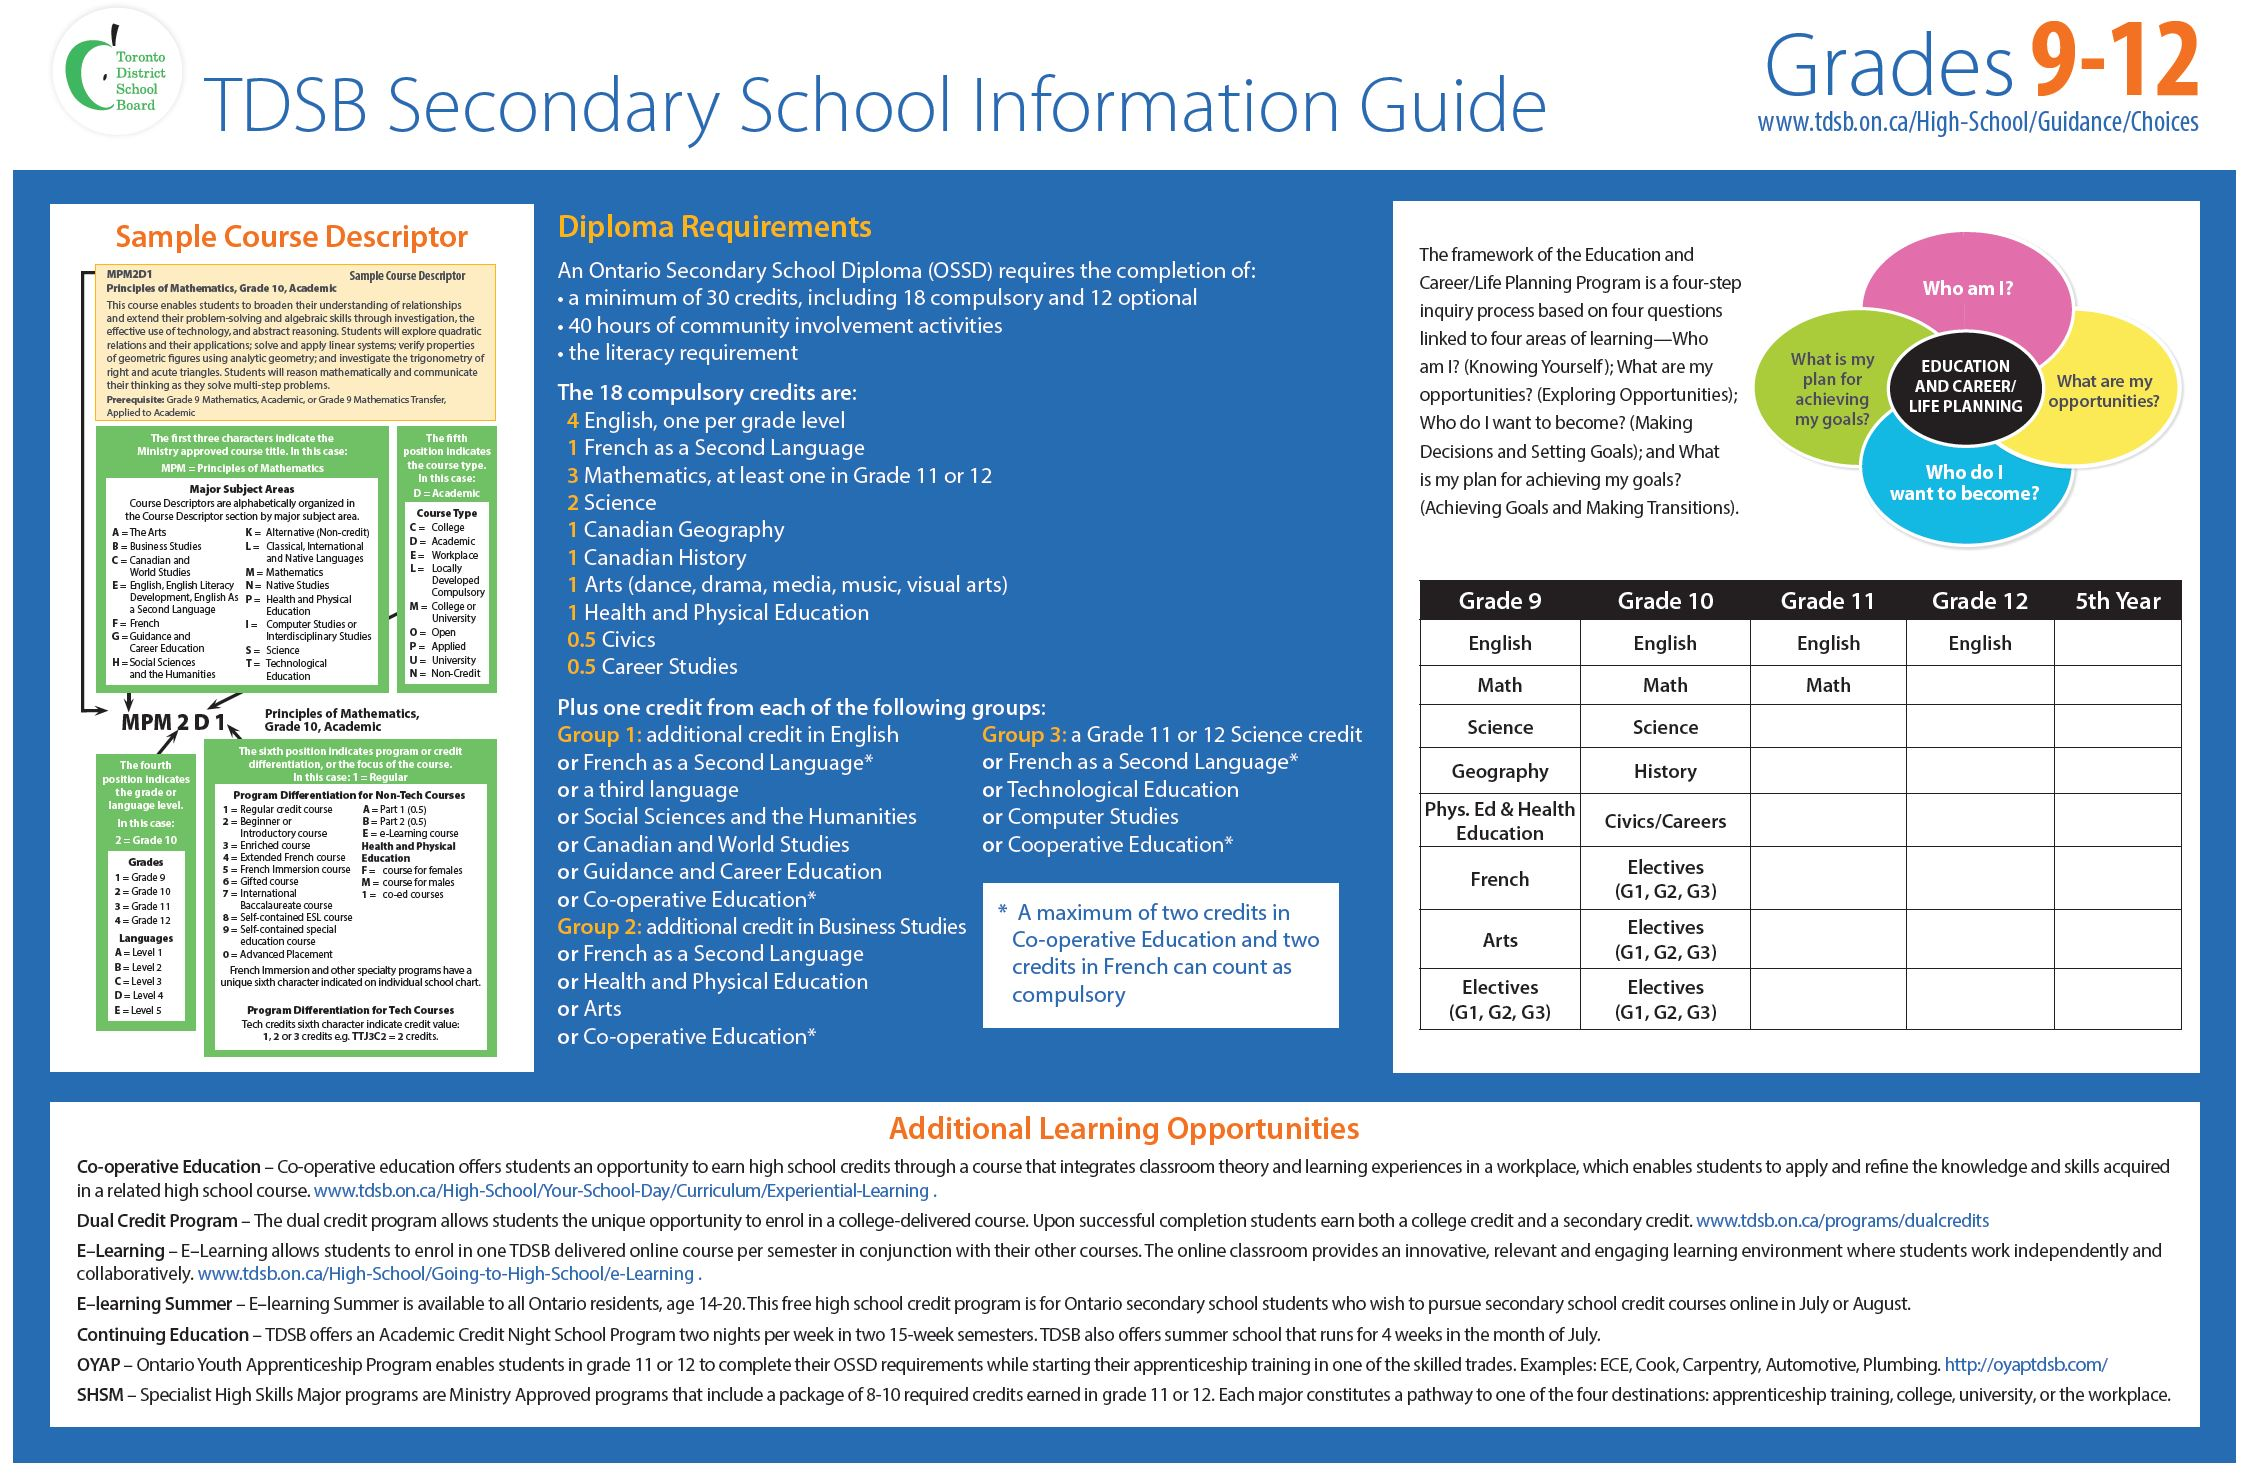 Choices 2017-2018 Planning Guide